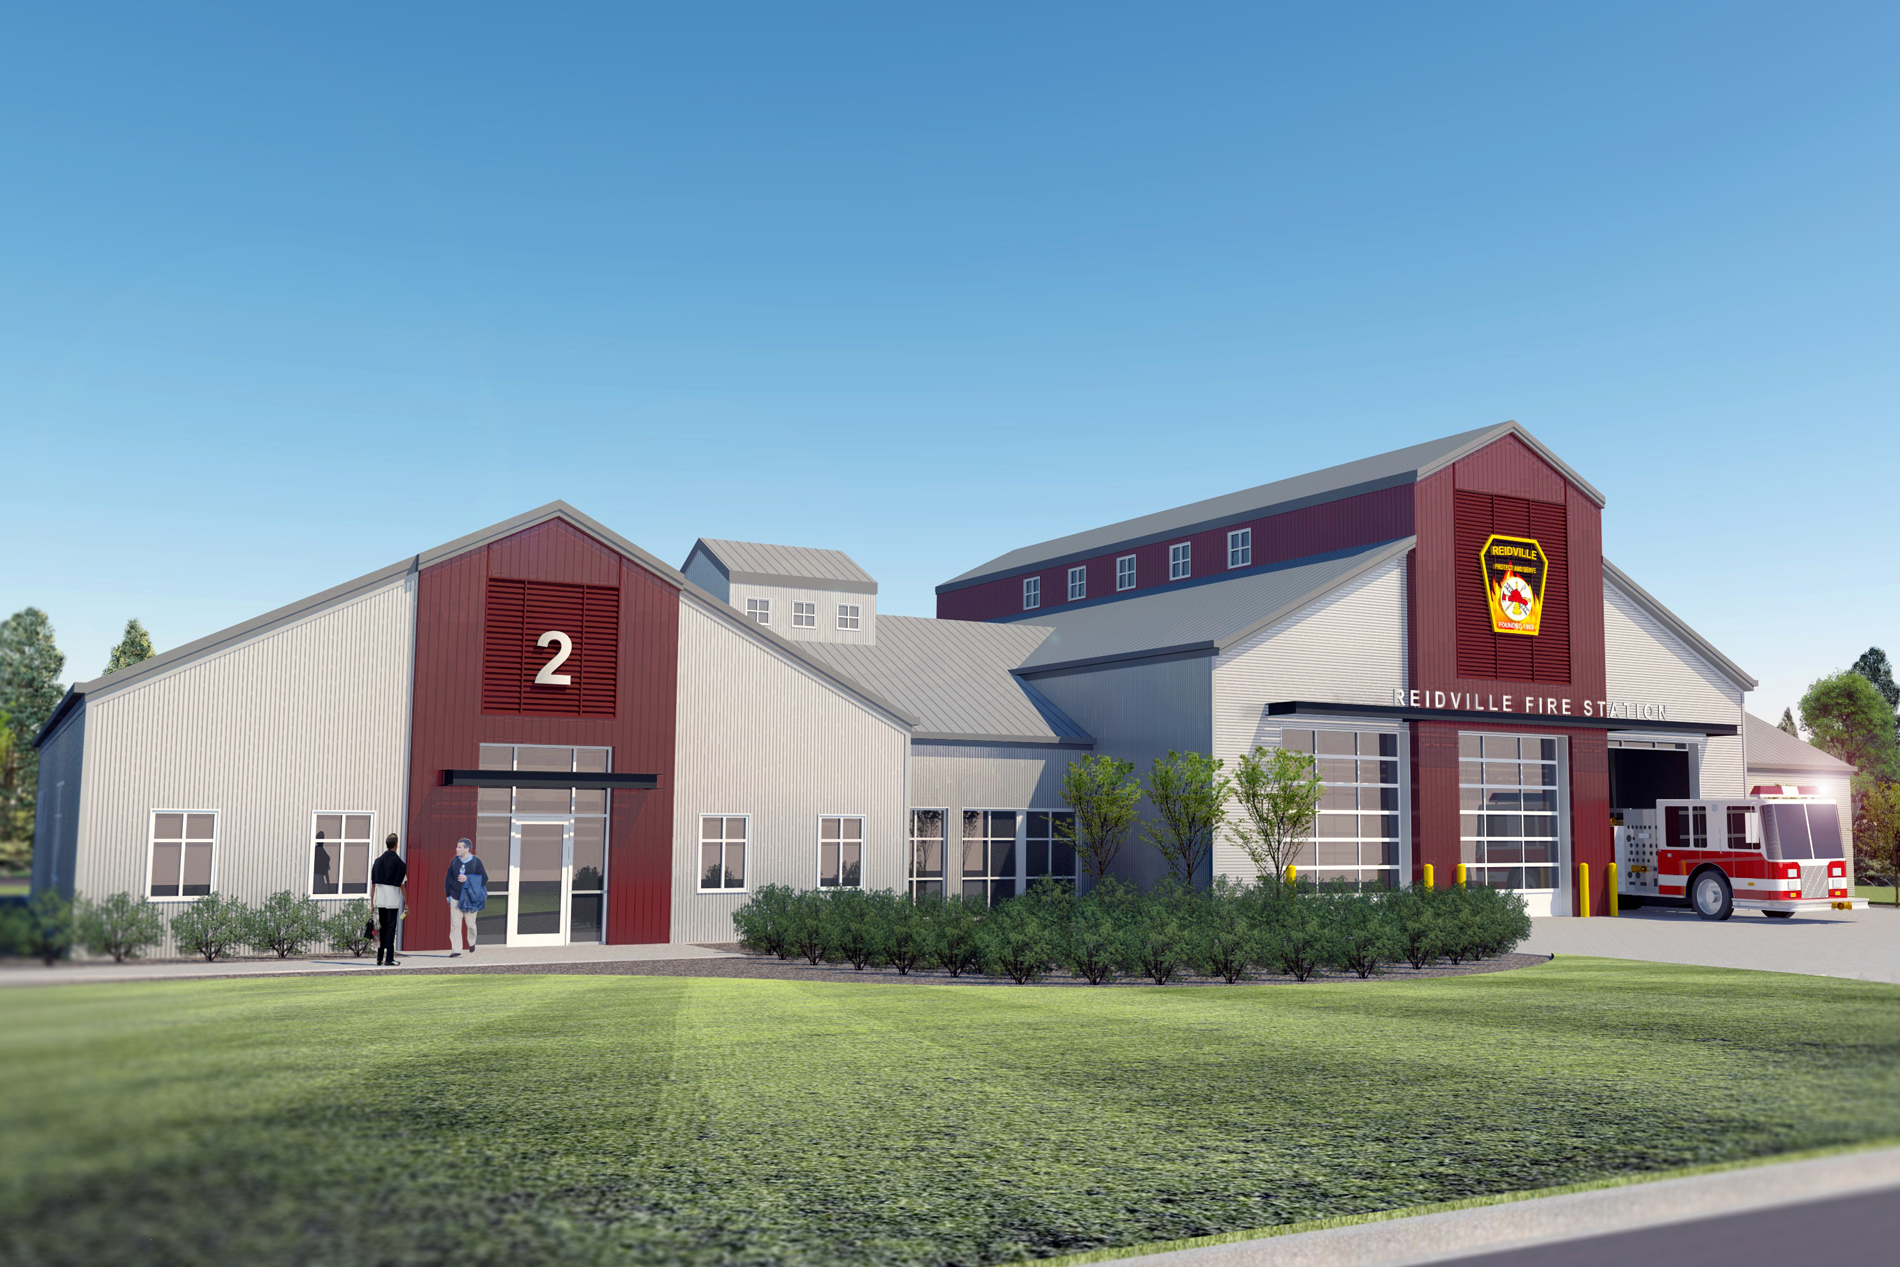 Reidville Area Fire District New Fire Station | DP3 Architects